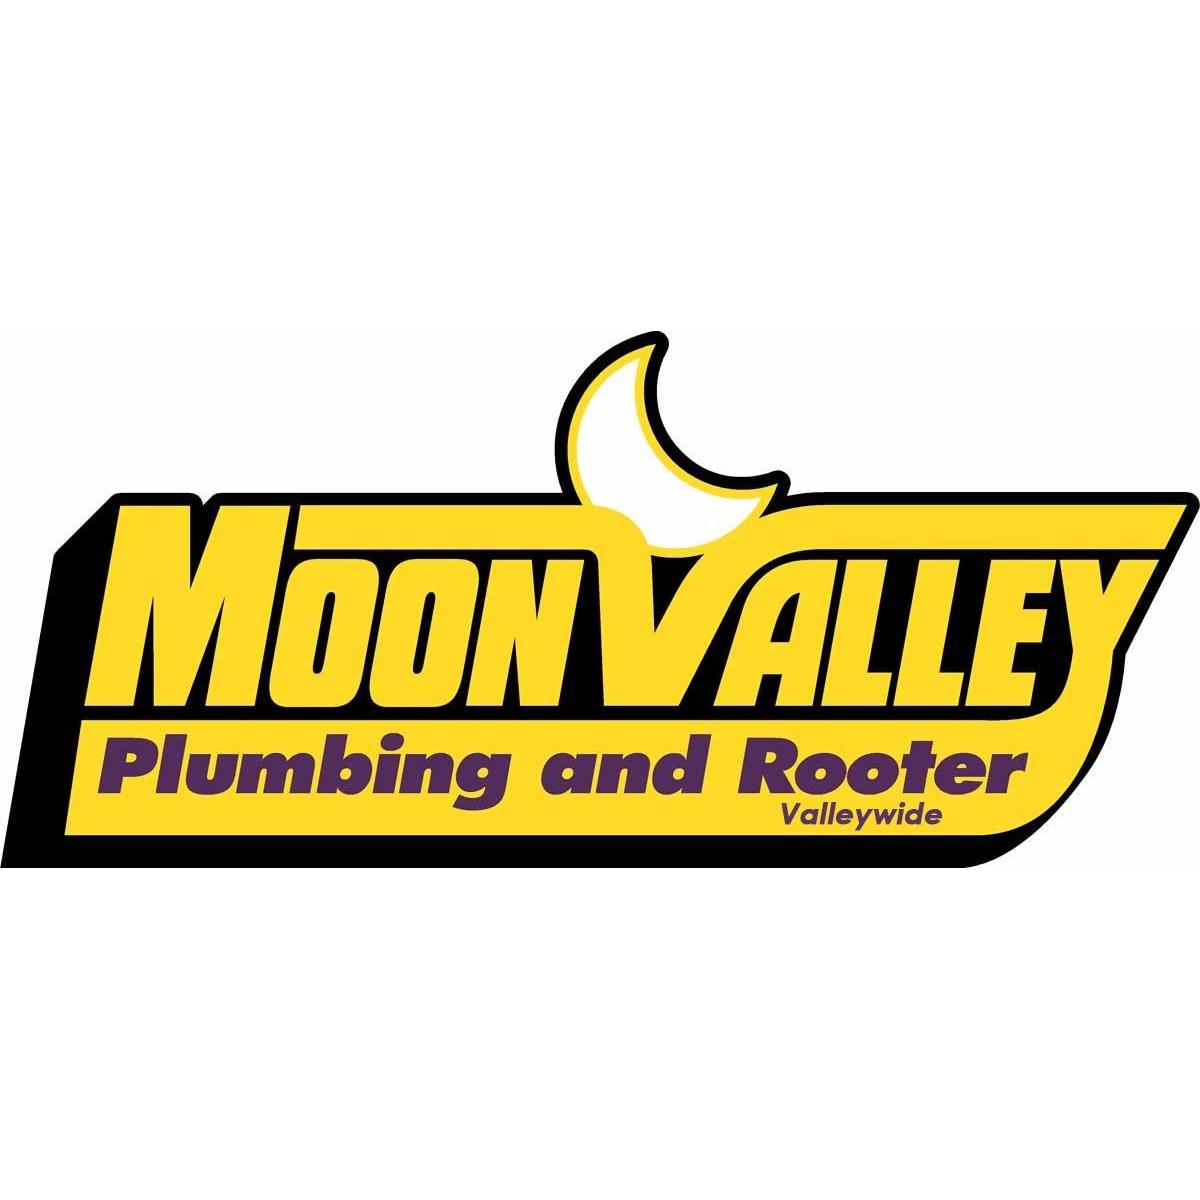 Moon Valley Plumbing